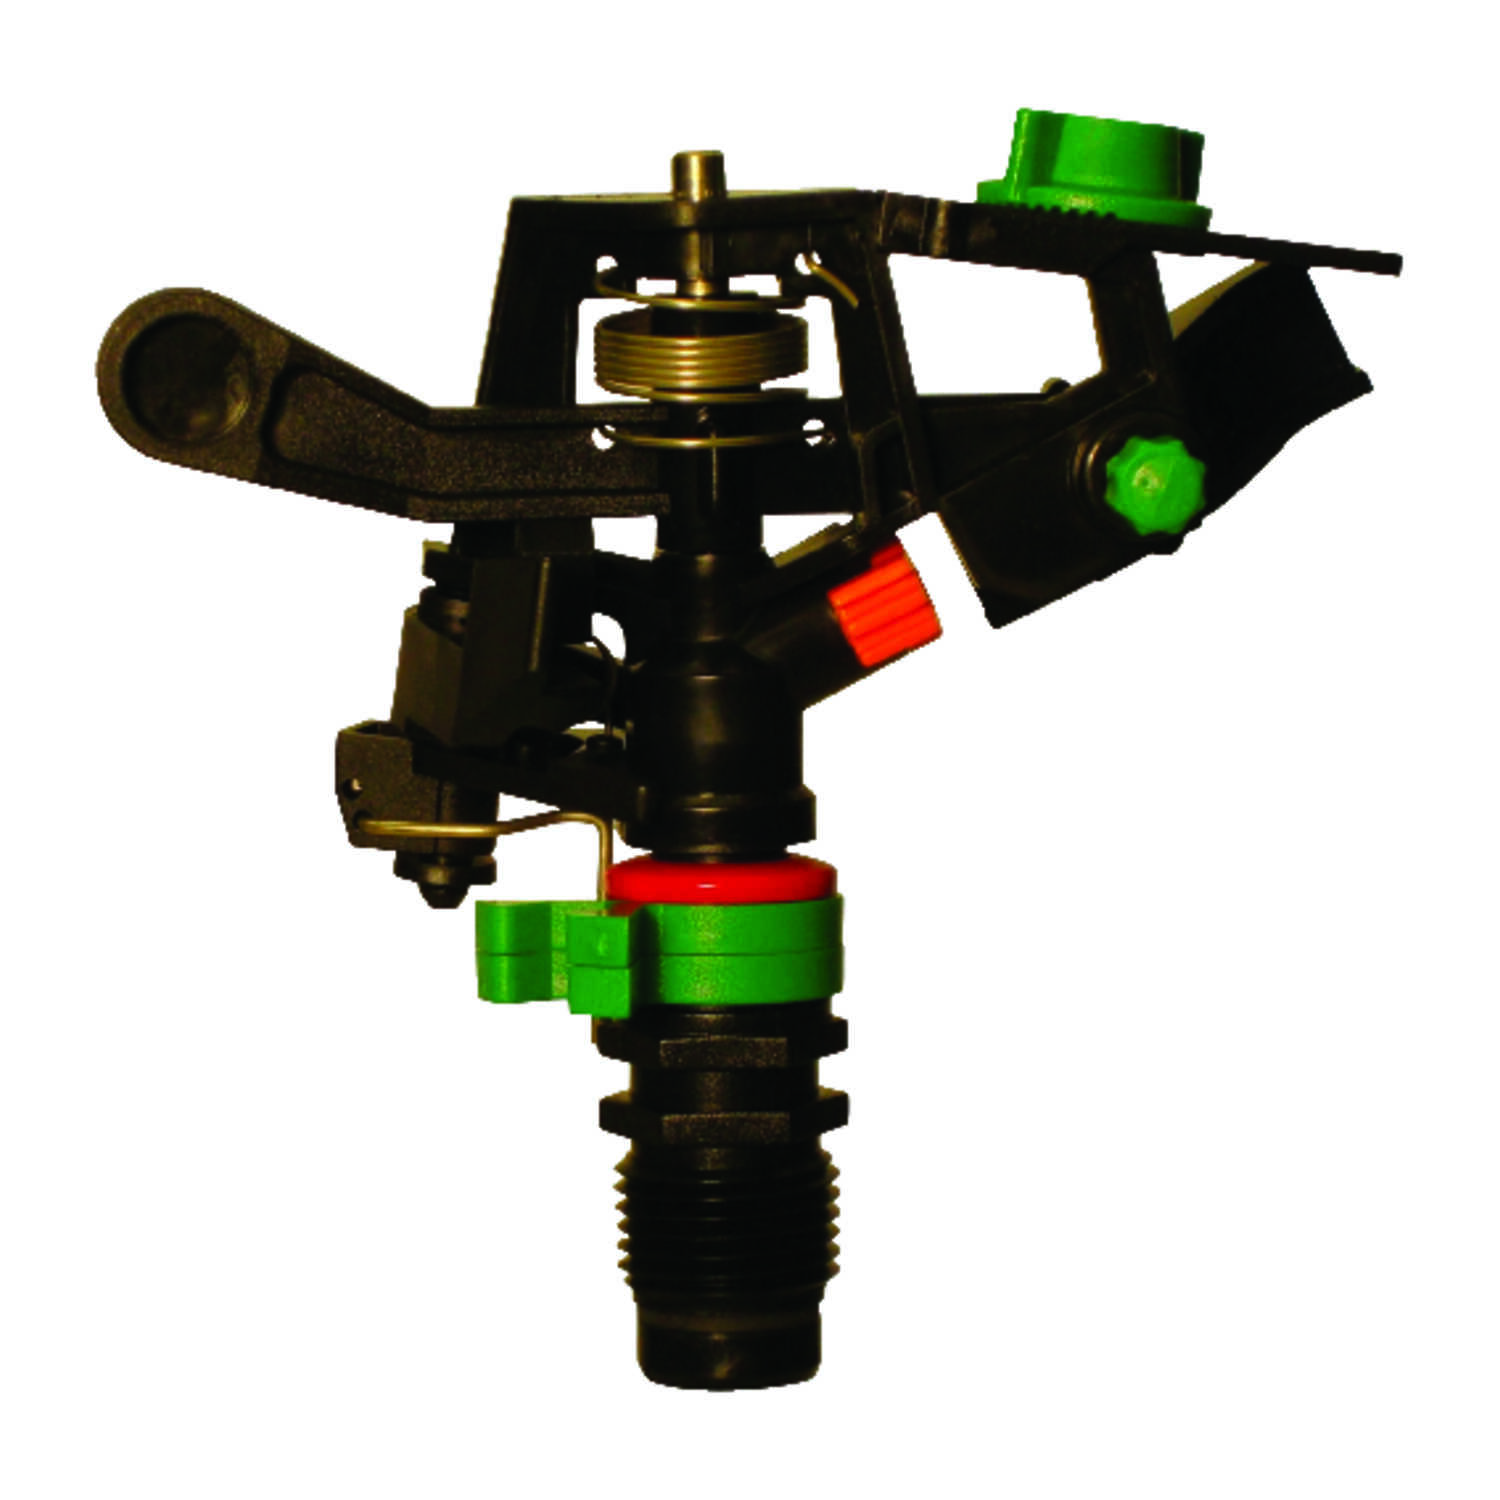 Naan  Irrigator Pro  1/2 in. Dia. x 7 in. L Sprinkler Head Lock